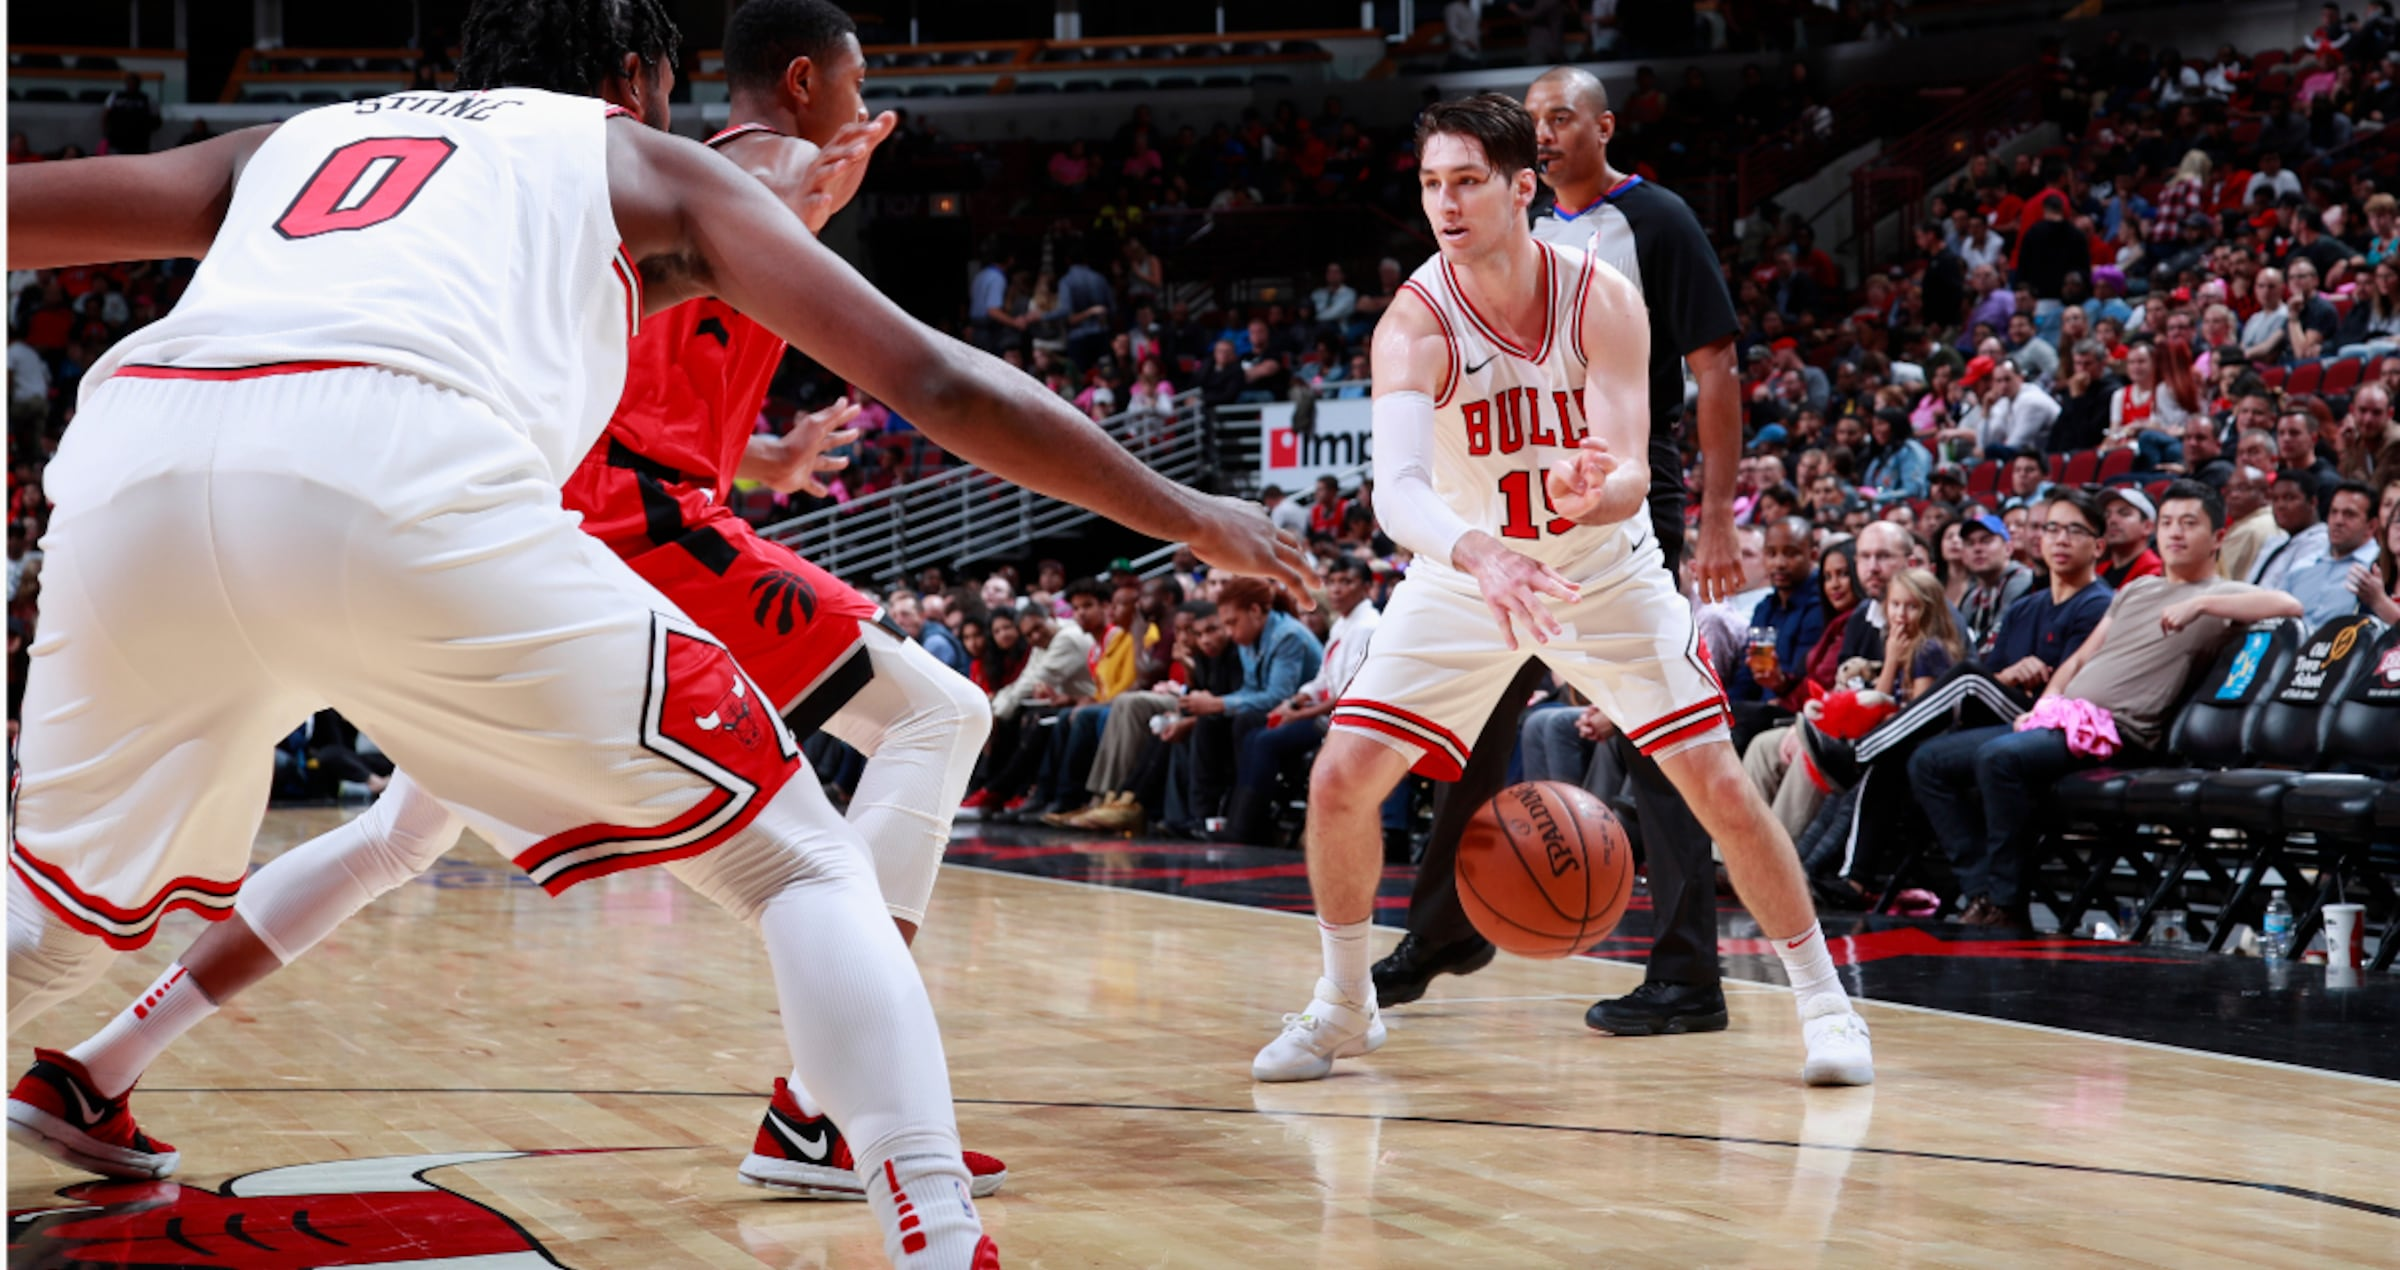 Ryan Arcidiacono #15 of the Chicago Bulls passes the ball against the Toronto Raptors on October 13, 2017 at the United Center in Chicago, Illinois.